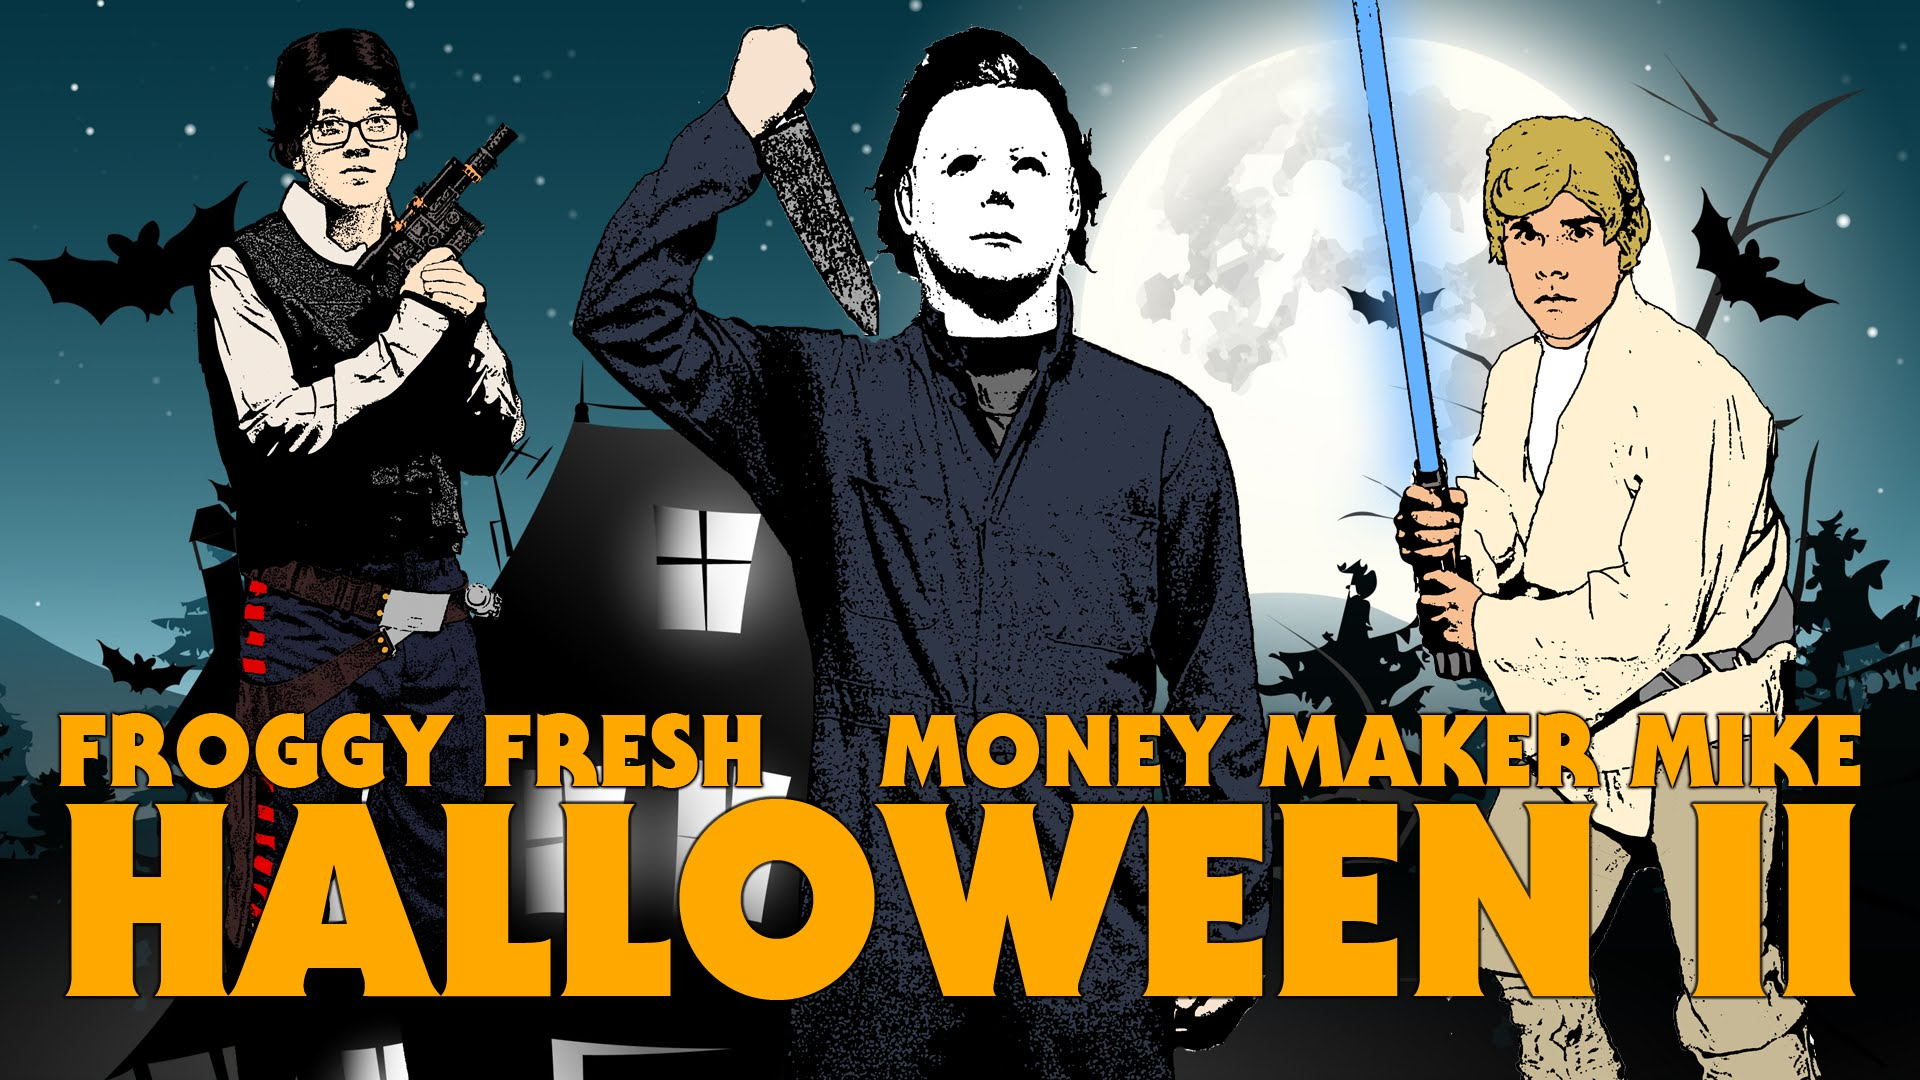 halloween ii a music video by rapper froggy fresh about confronting his fears and getting candy - Halloween 2 Music